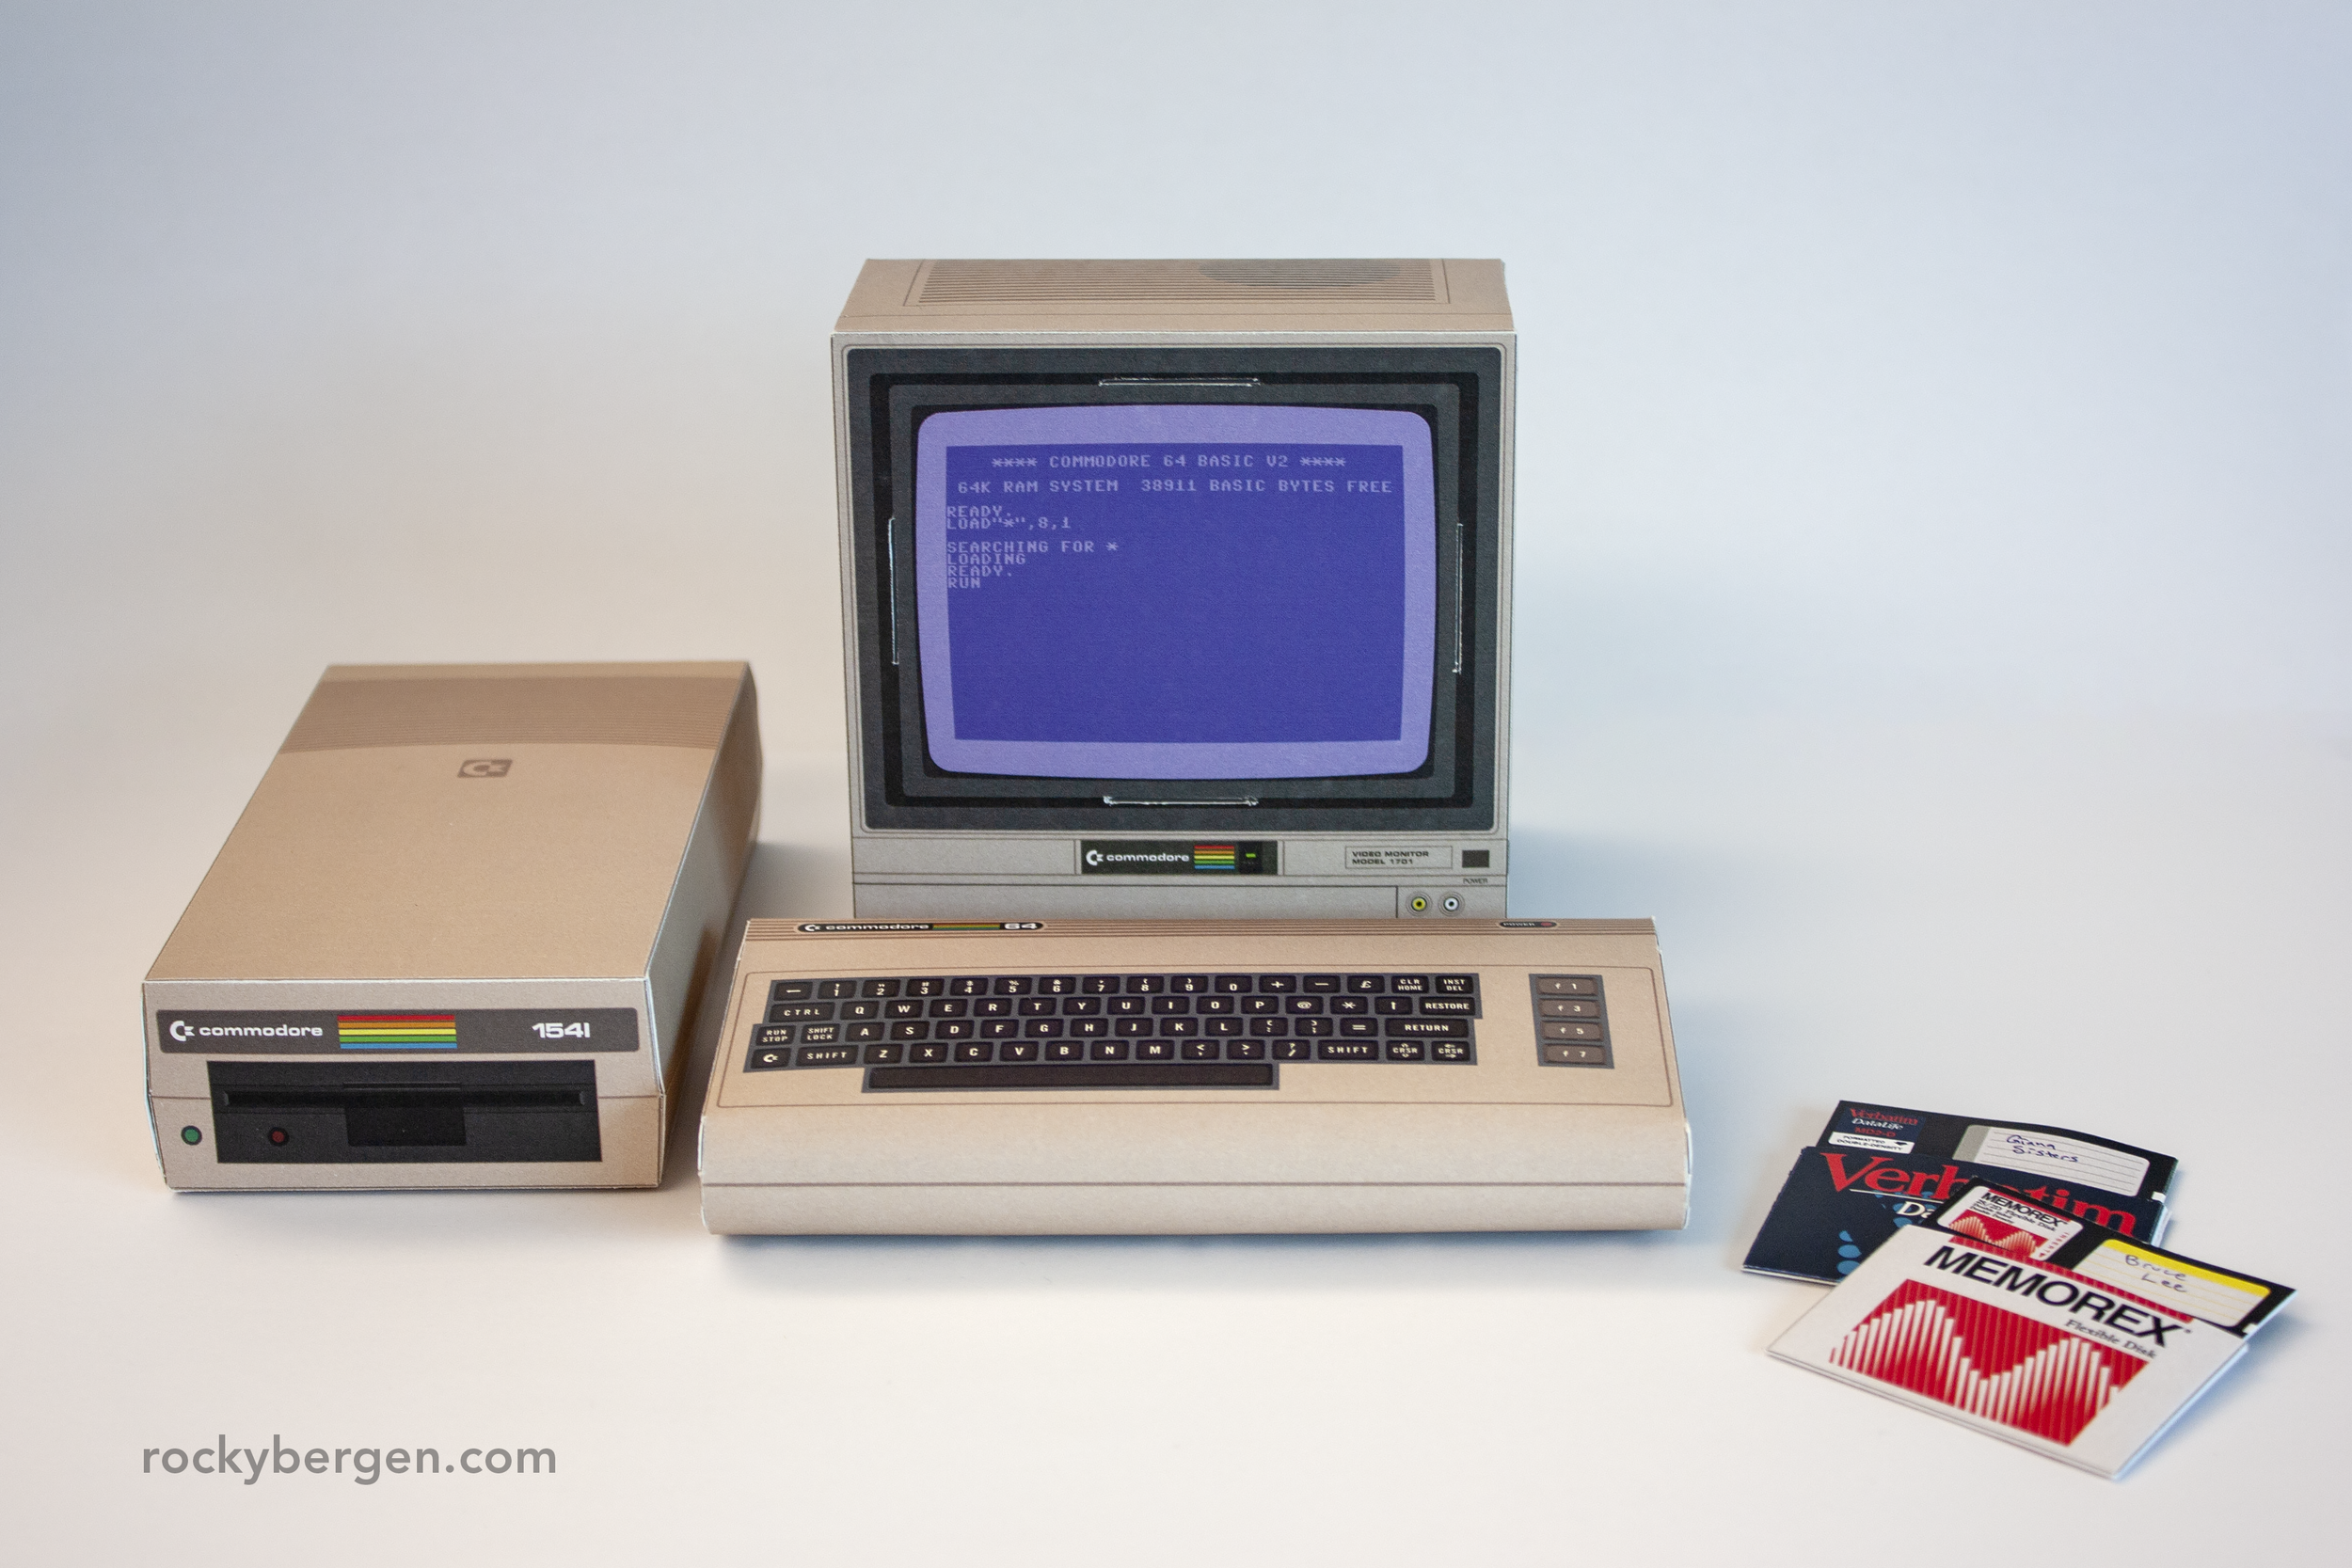 The Commodore 1541 disk drive proudly joins the Commodore 64 papercraft series.